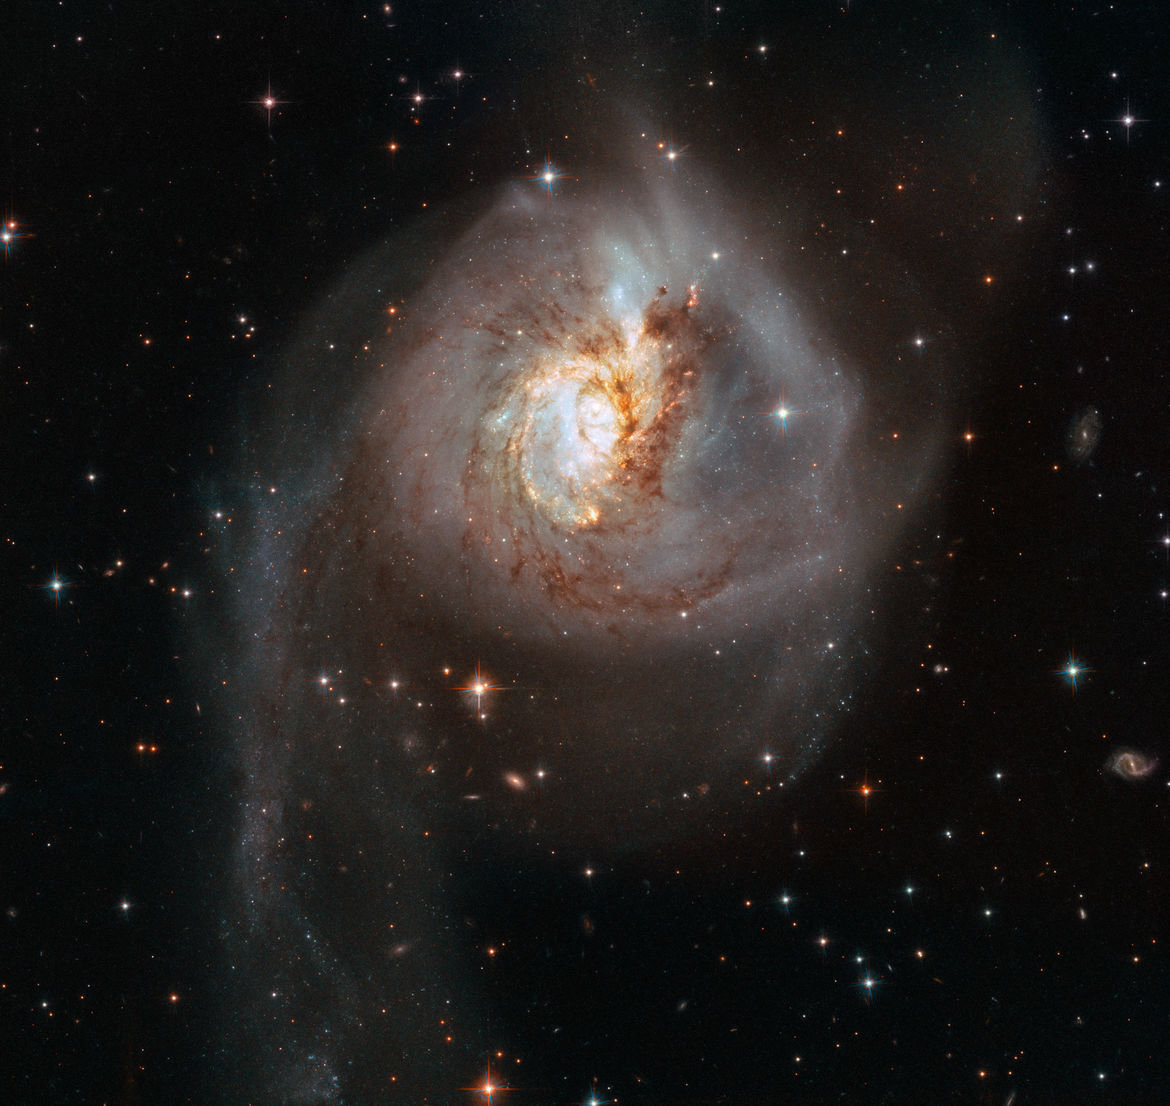 NGC 3256 is the aftermath of a cosmic collision, two huge spiral galaxies that have smashed into each other and merging. Credit: ESA/Hubble, NASA